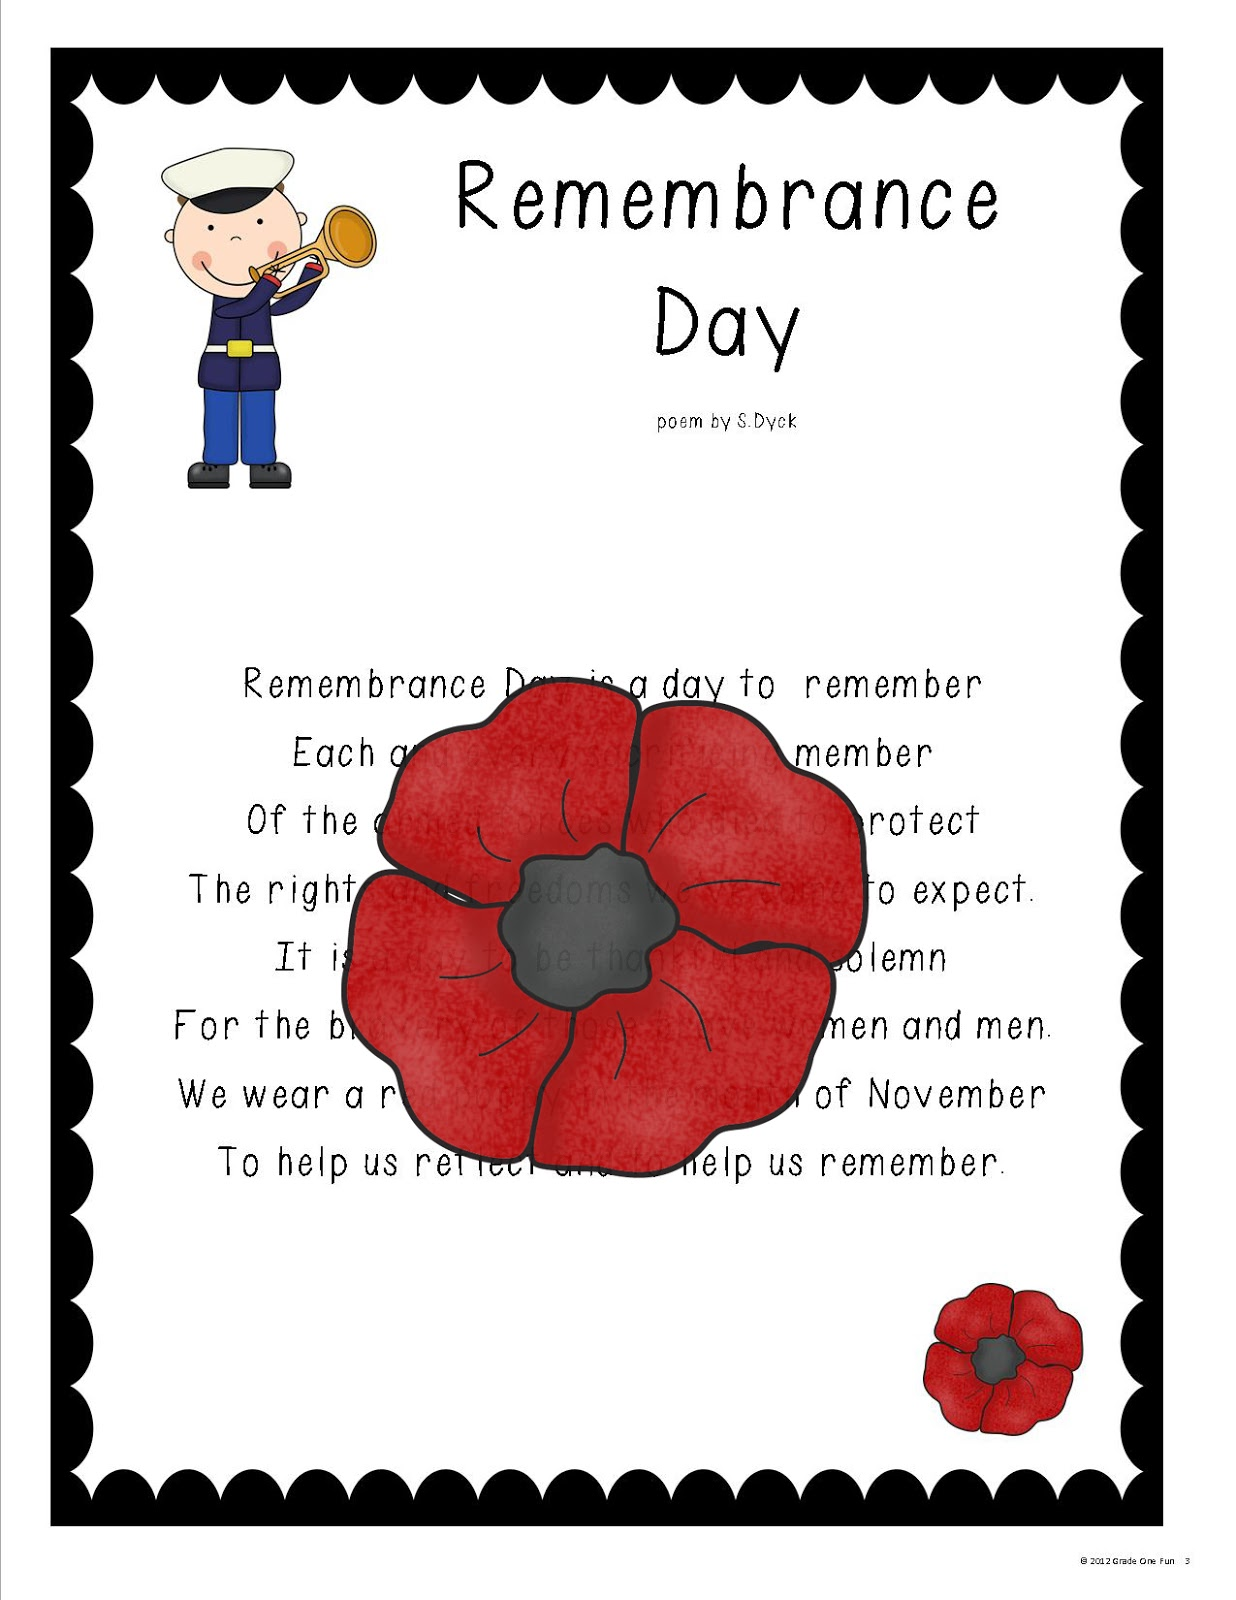 remembrance day essay grade 7 Short essay, speech on remembrance day for school students in english read best happy latest free article on remember day of canada australia other country.